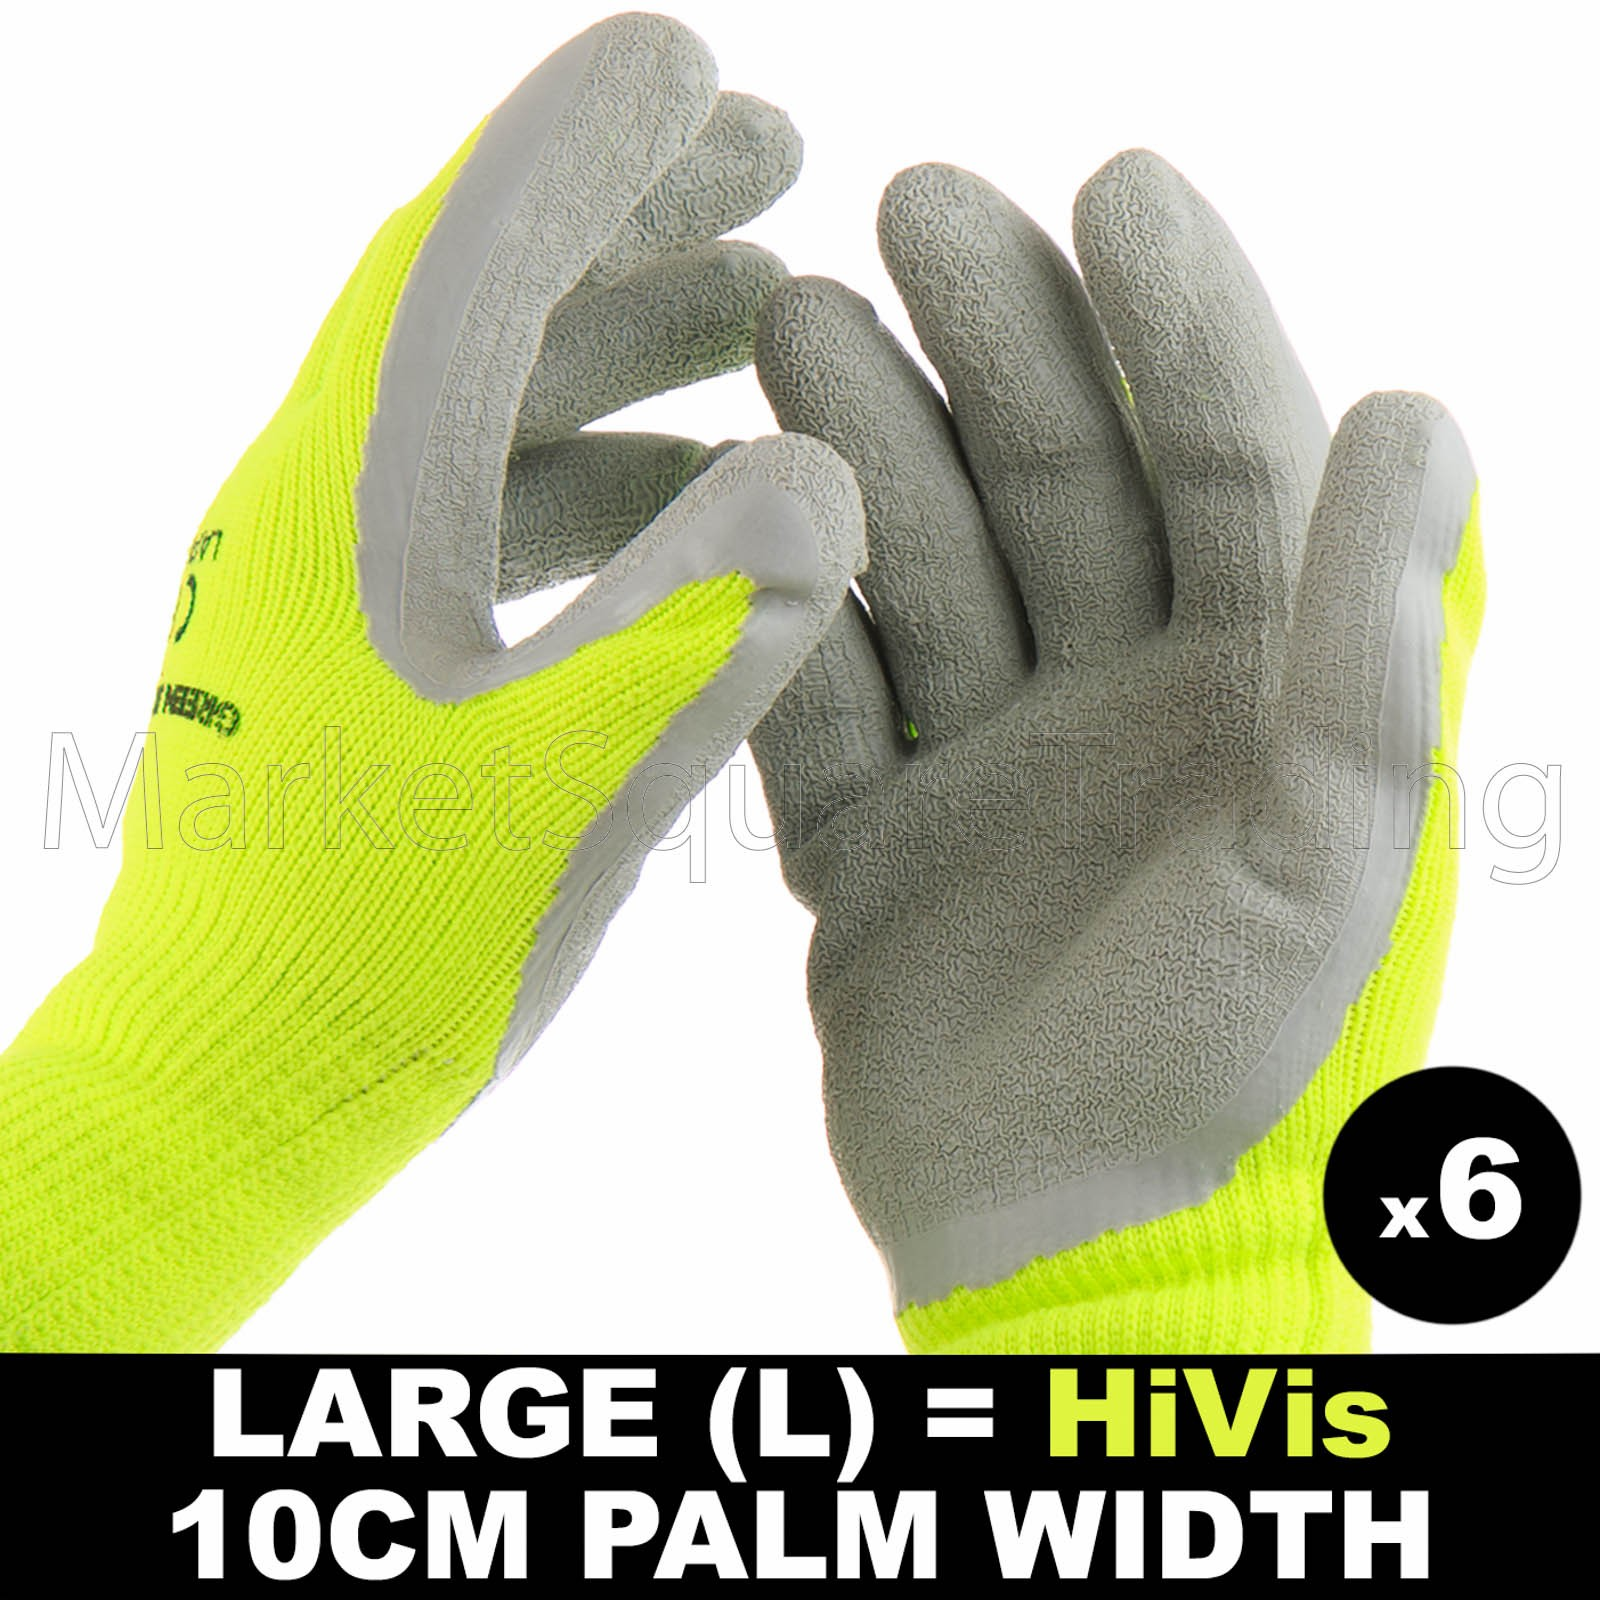 6 PAIR WORK LARGE GLOVE HI-VIS YELL WARM EXTRA THICK WINTER LATEX GRIP SIZE 10CM